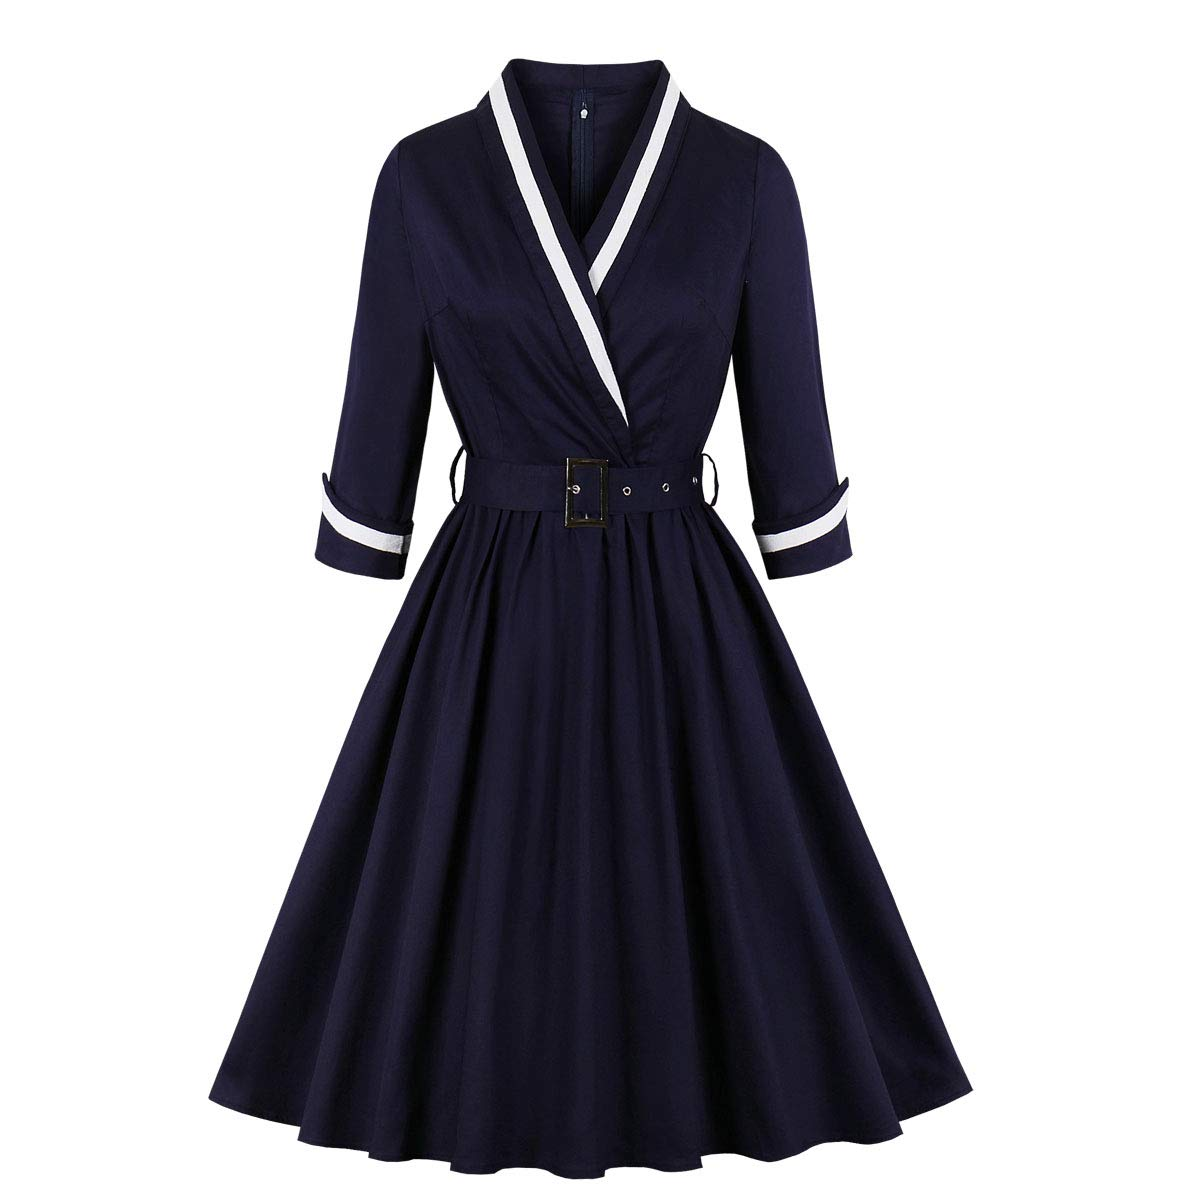 500 Vintage Style Dresses for Sale | Vintage Inspired Dresses Wellwits Womens 3/4 Sleeves Wrap Sailor Stripe Cotton Vintage Career Dress $24.98 AT vintagedancer.com